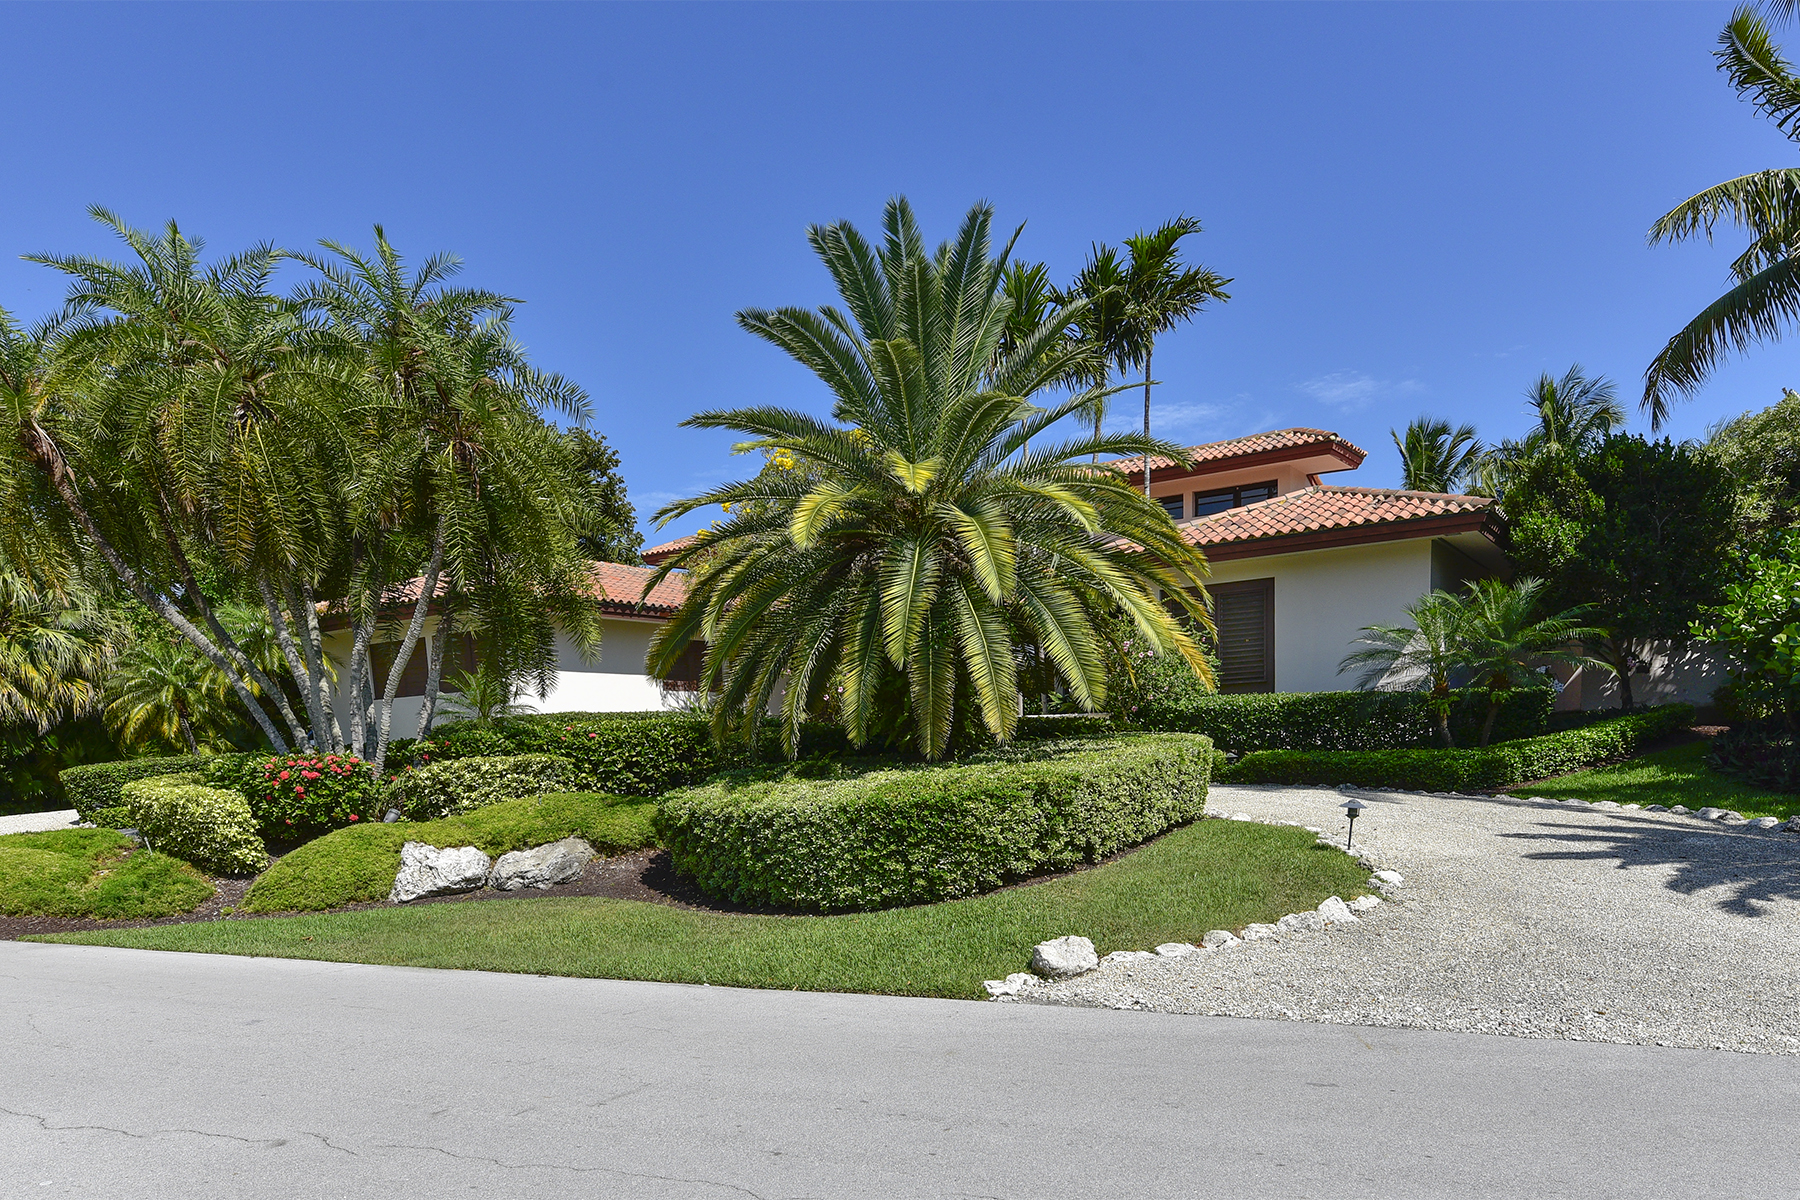 Maison unifamiliale pour l Vente à Waterfront Home at Ocean Reef 30 East Snapper Point Drive Ocean Reef Community, Key Largo, Florida, 33037 États-Unis